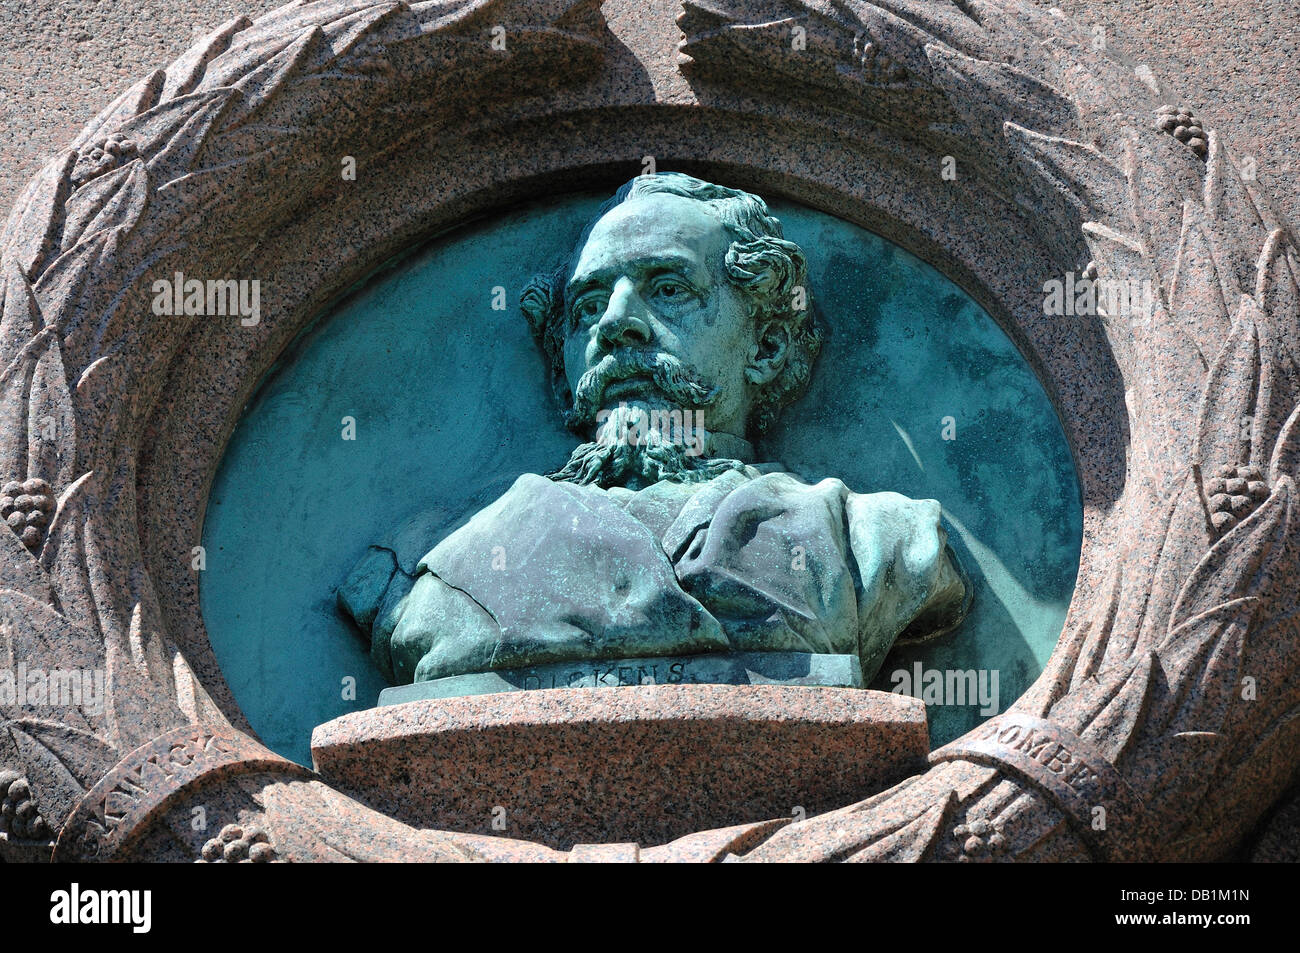 Broadstairs, Kent, England, UK. Bust of Charles Dickens in the wall of Bleak House - Stock Image